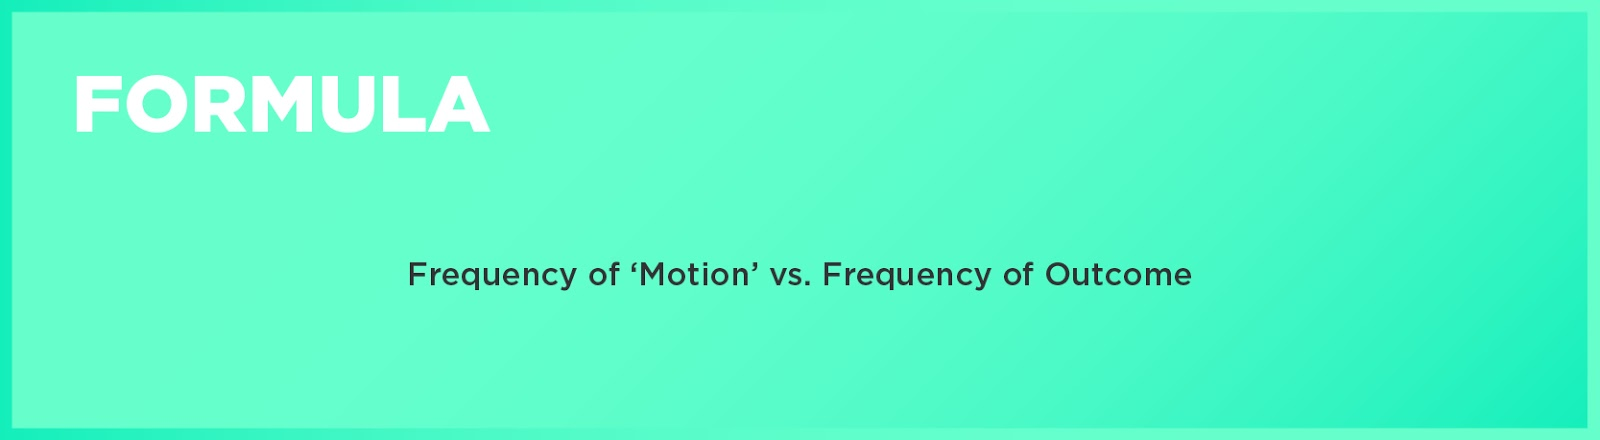 Formula: Frequency of 'Motion' vs. Frequency of Outcome